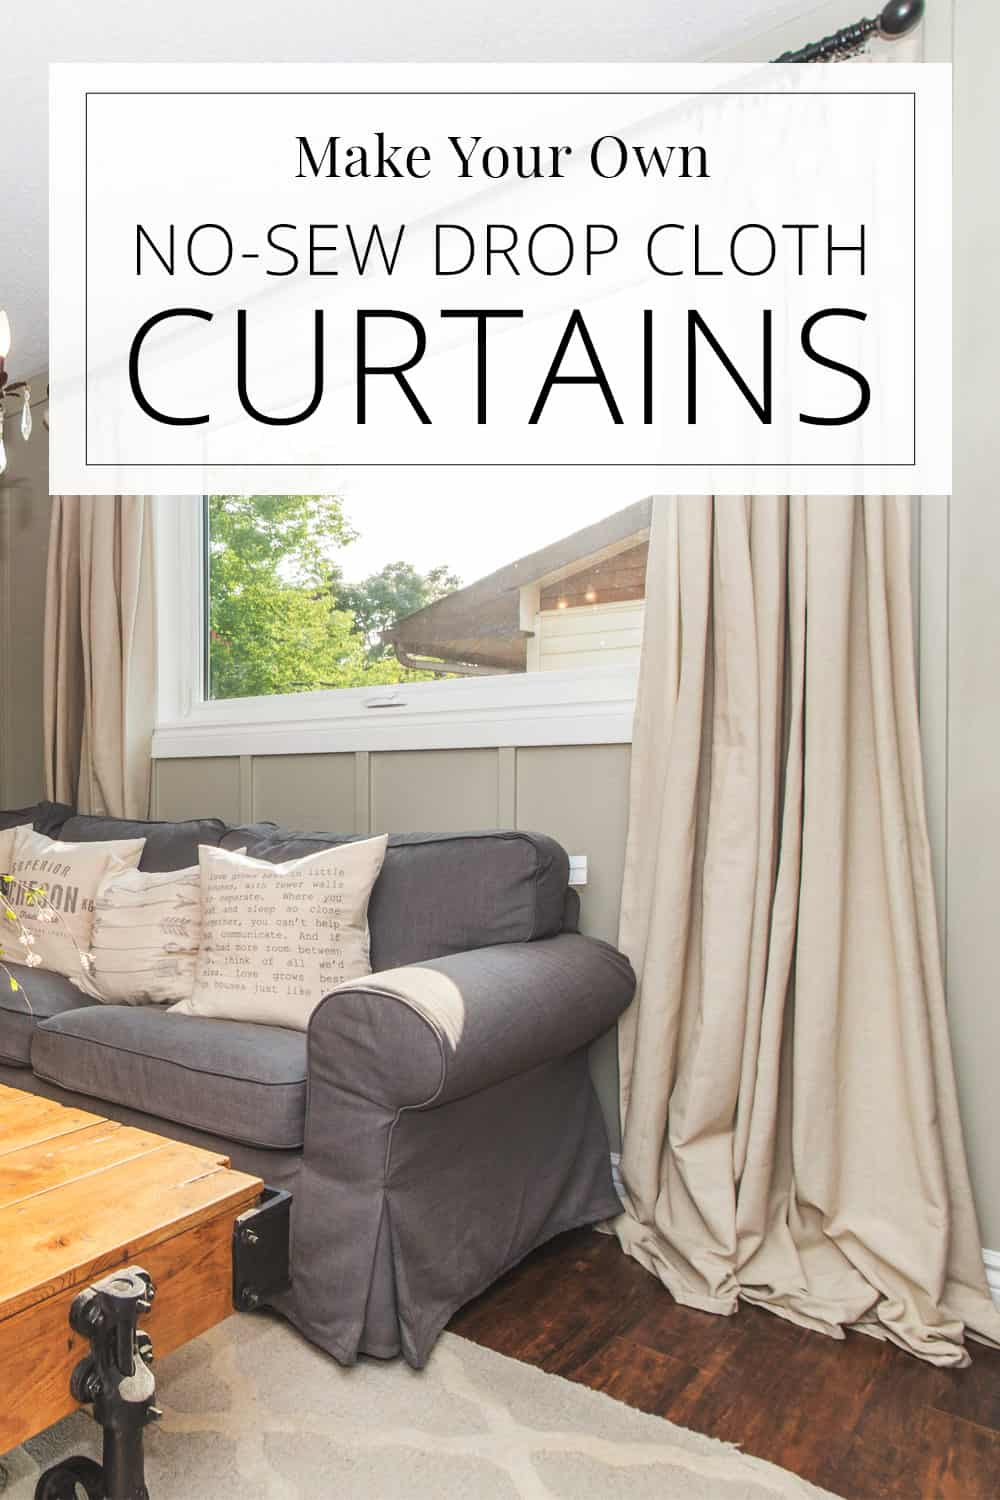 drop cloth curtains on living room window, grey sectional couch, chandelier